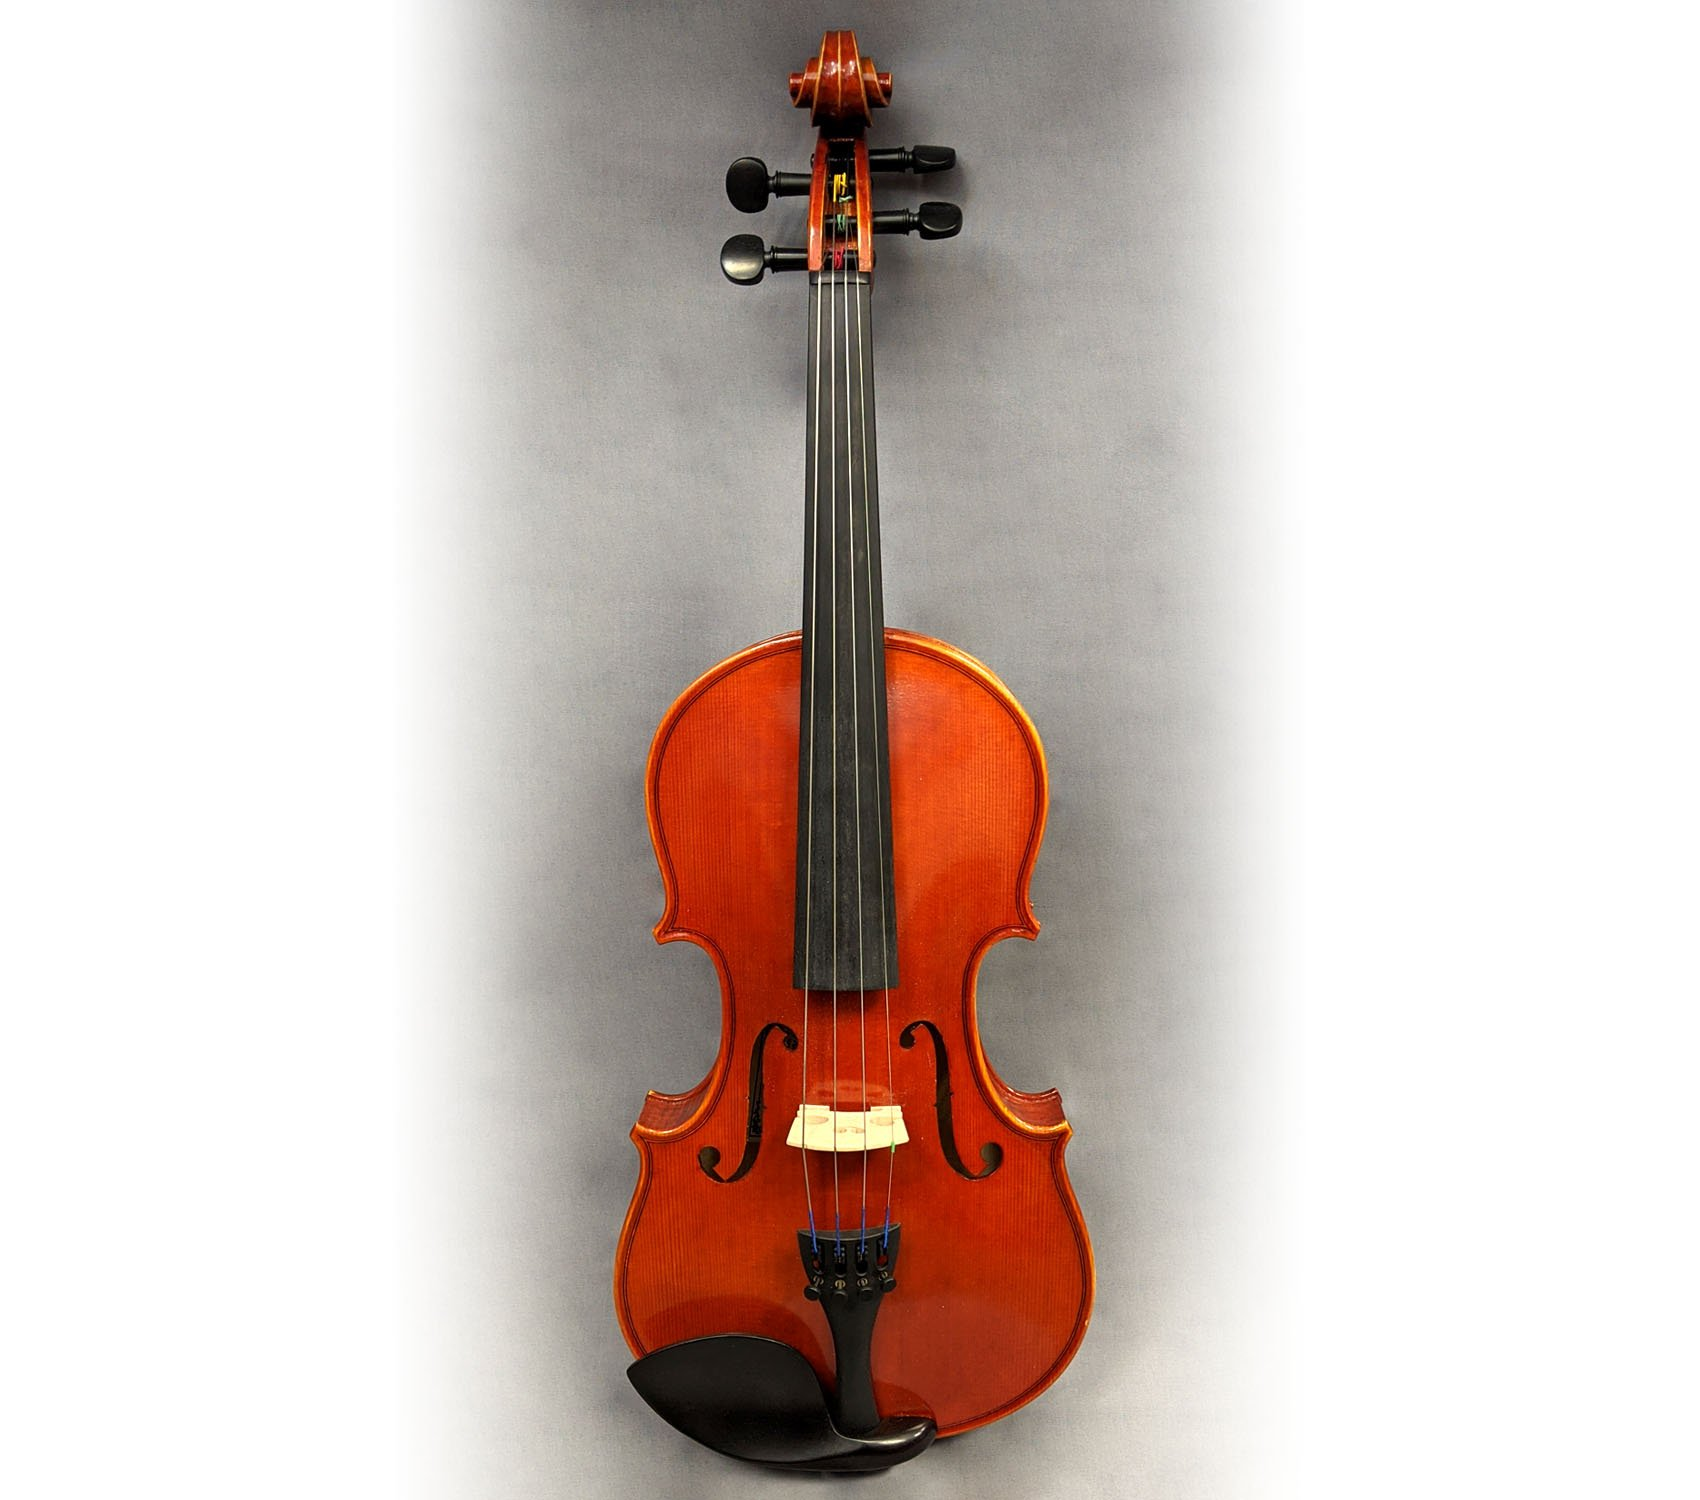 Pavia VN264P Violin 4/4 Outfit with Pegheds